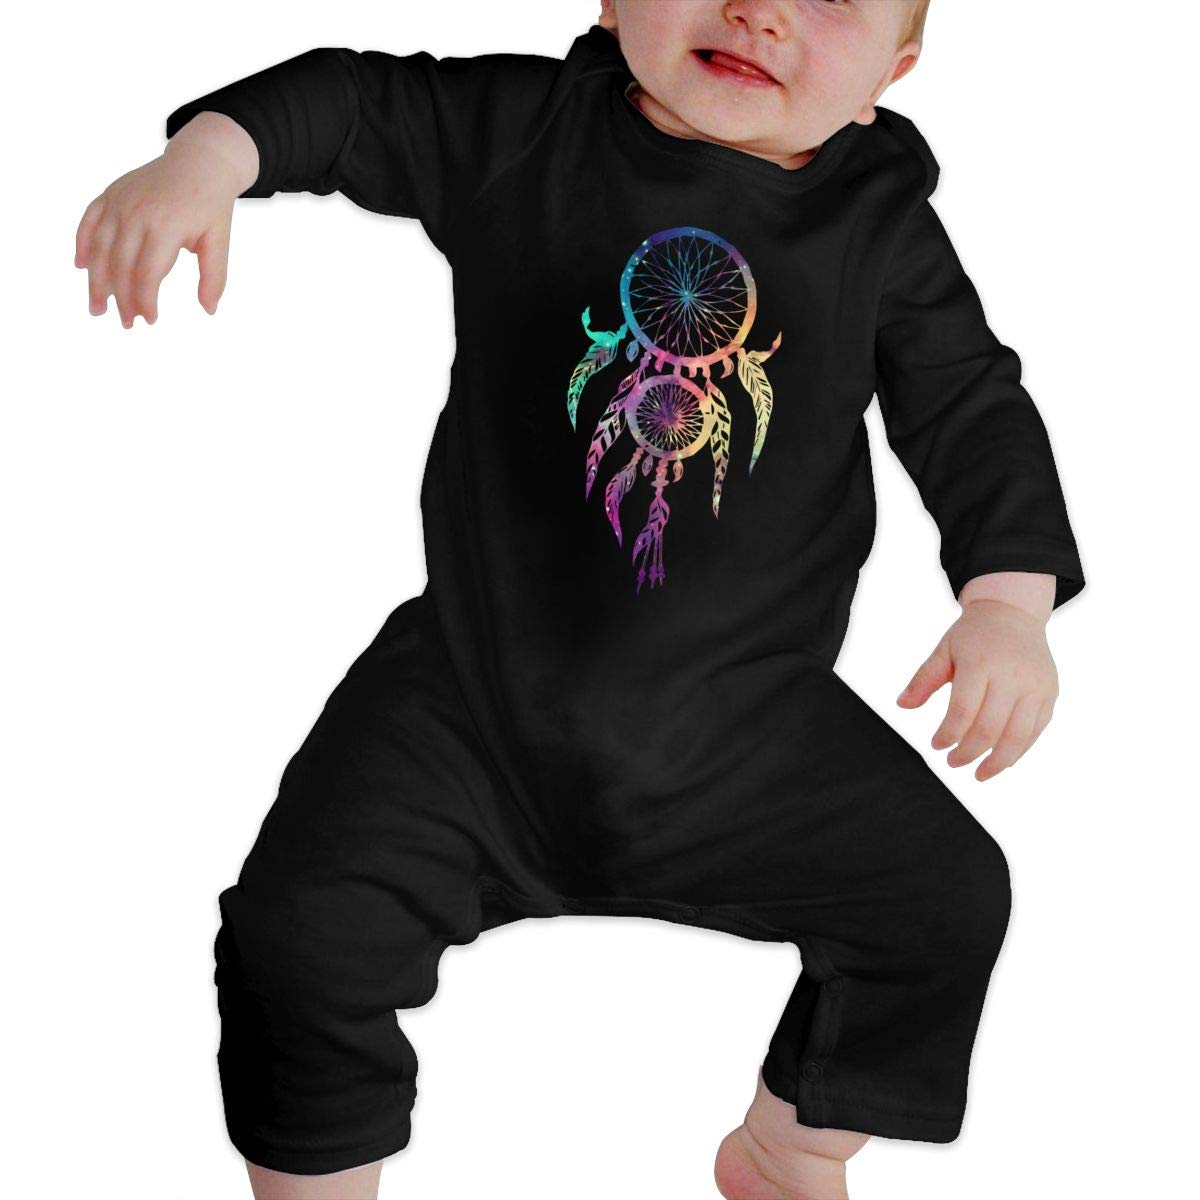 Fasenix Color Dream Catcher Newborn Baby Boy Girl Romper Jumpsuit Long Sleeve Bodysuit Overalls Outfits Clothes